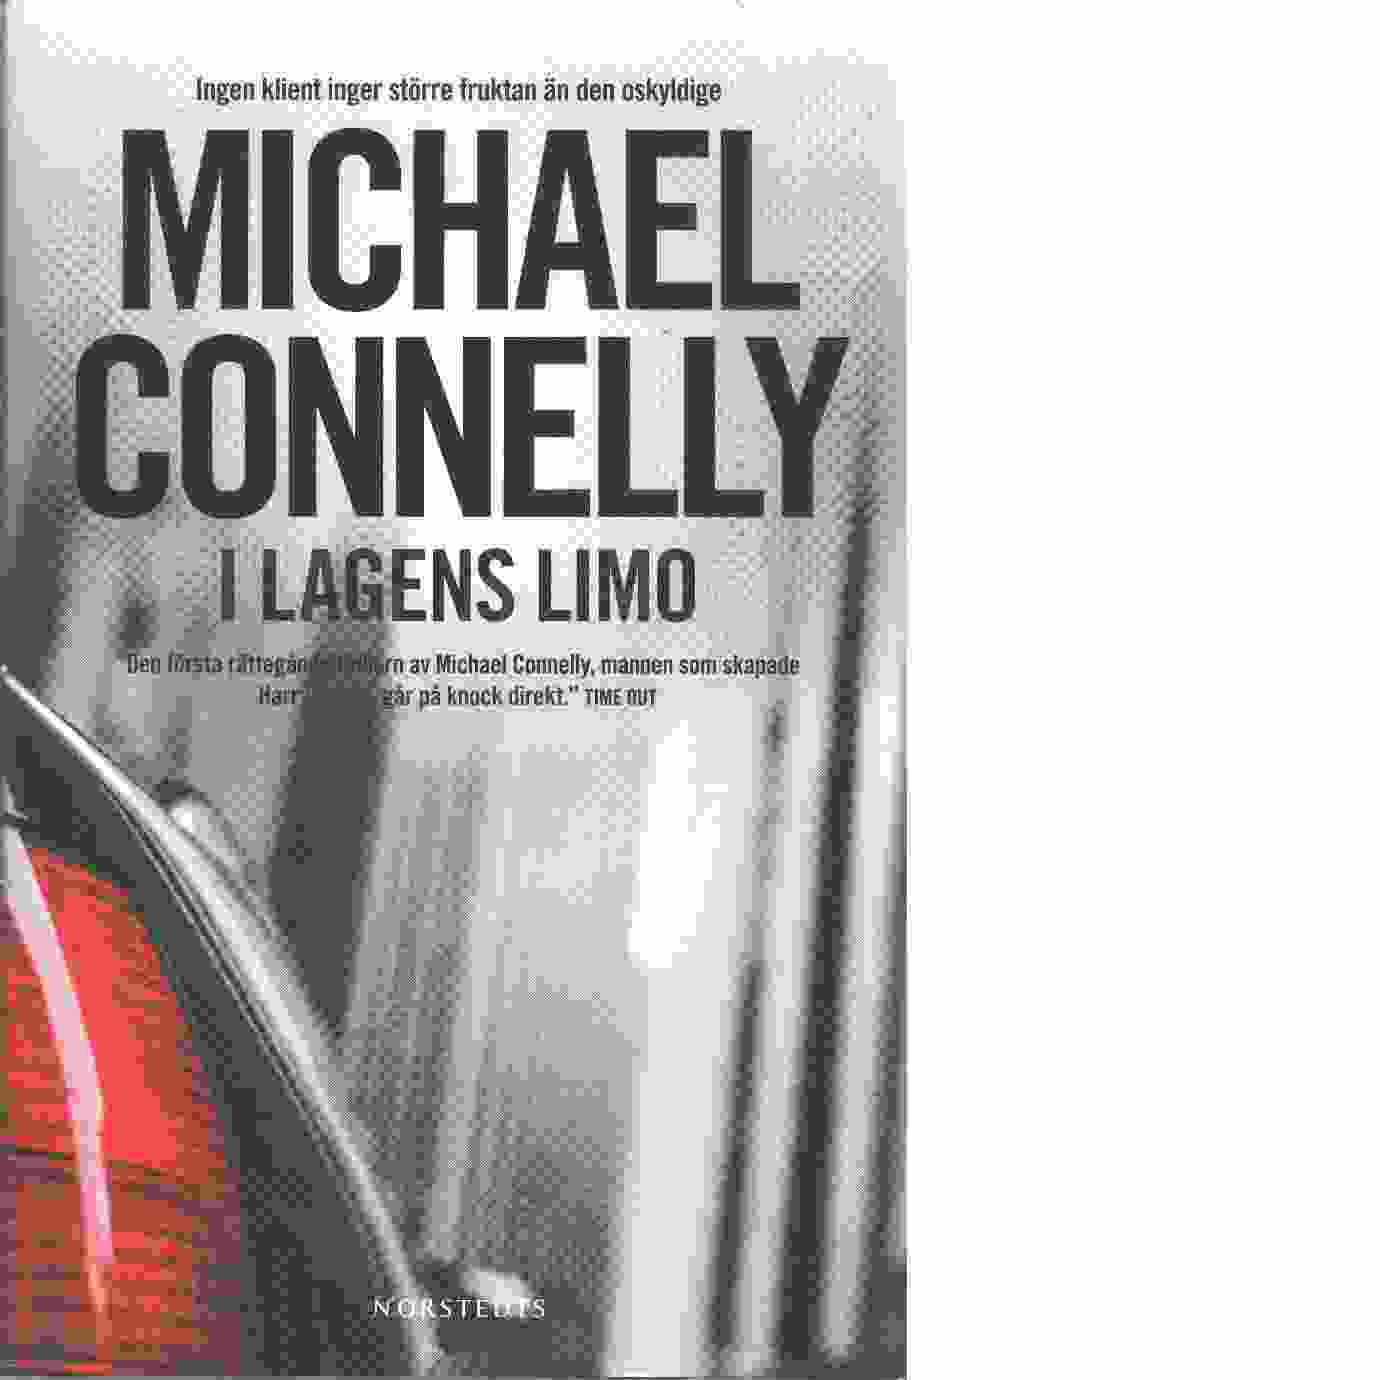 I lagens limo - Connelly, Michael